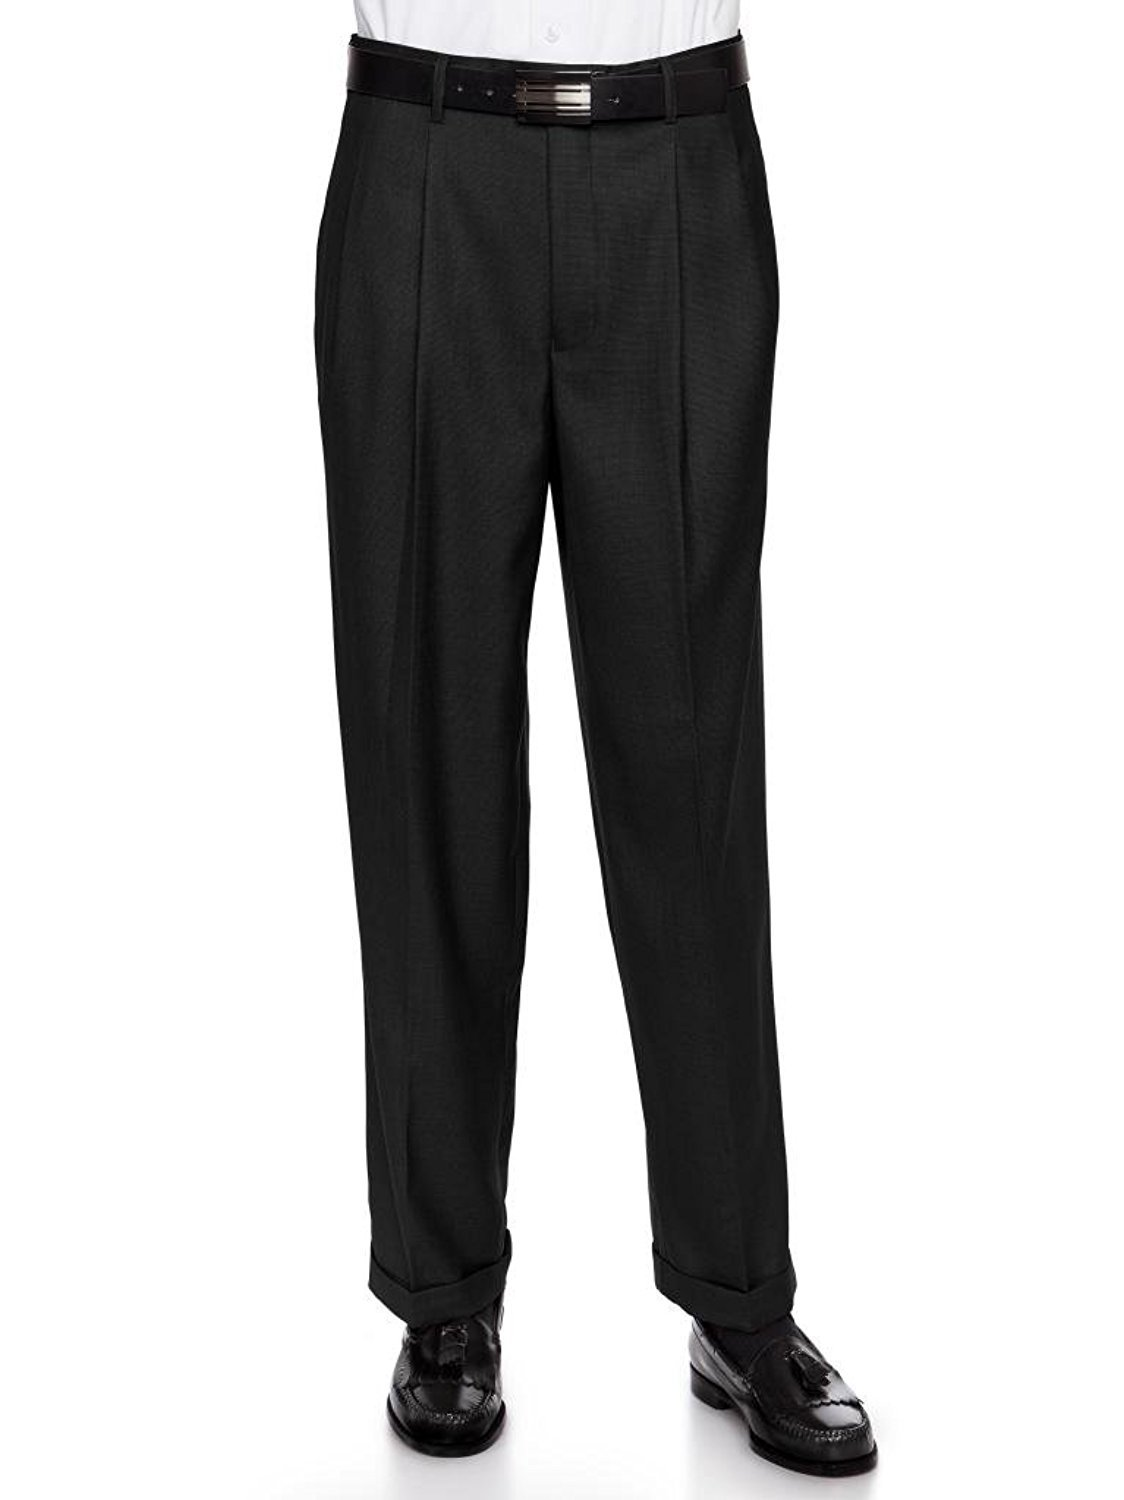 Giovanni Uomo Mens Pleate Front Traditional Fit Dress Pant